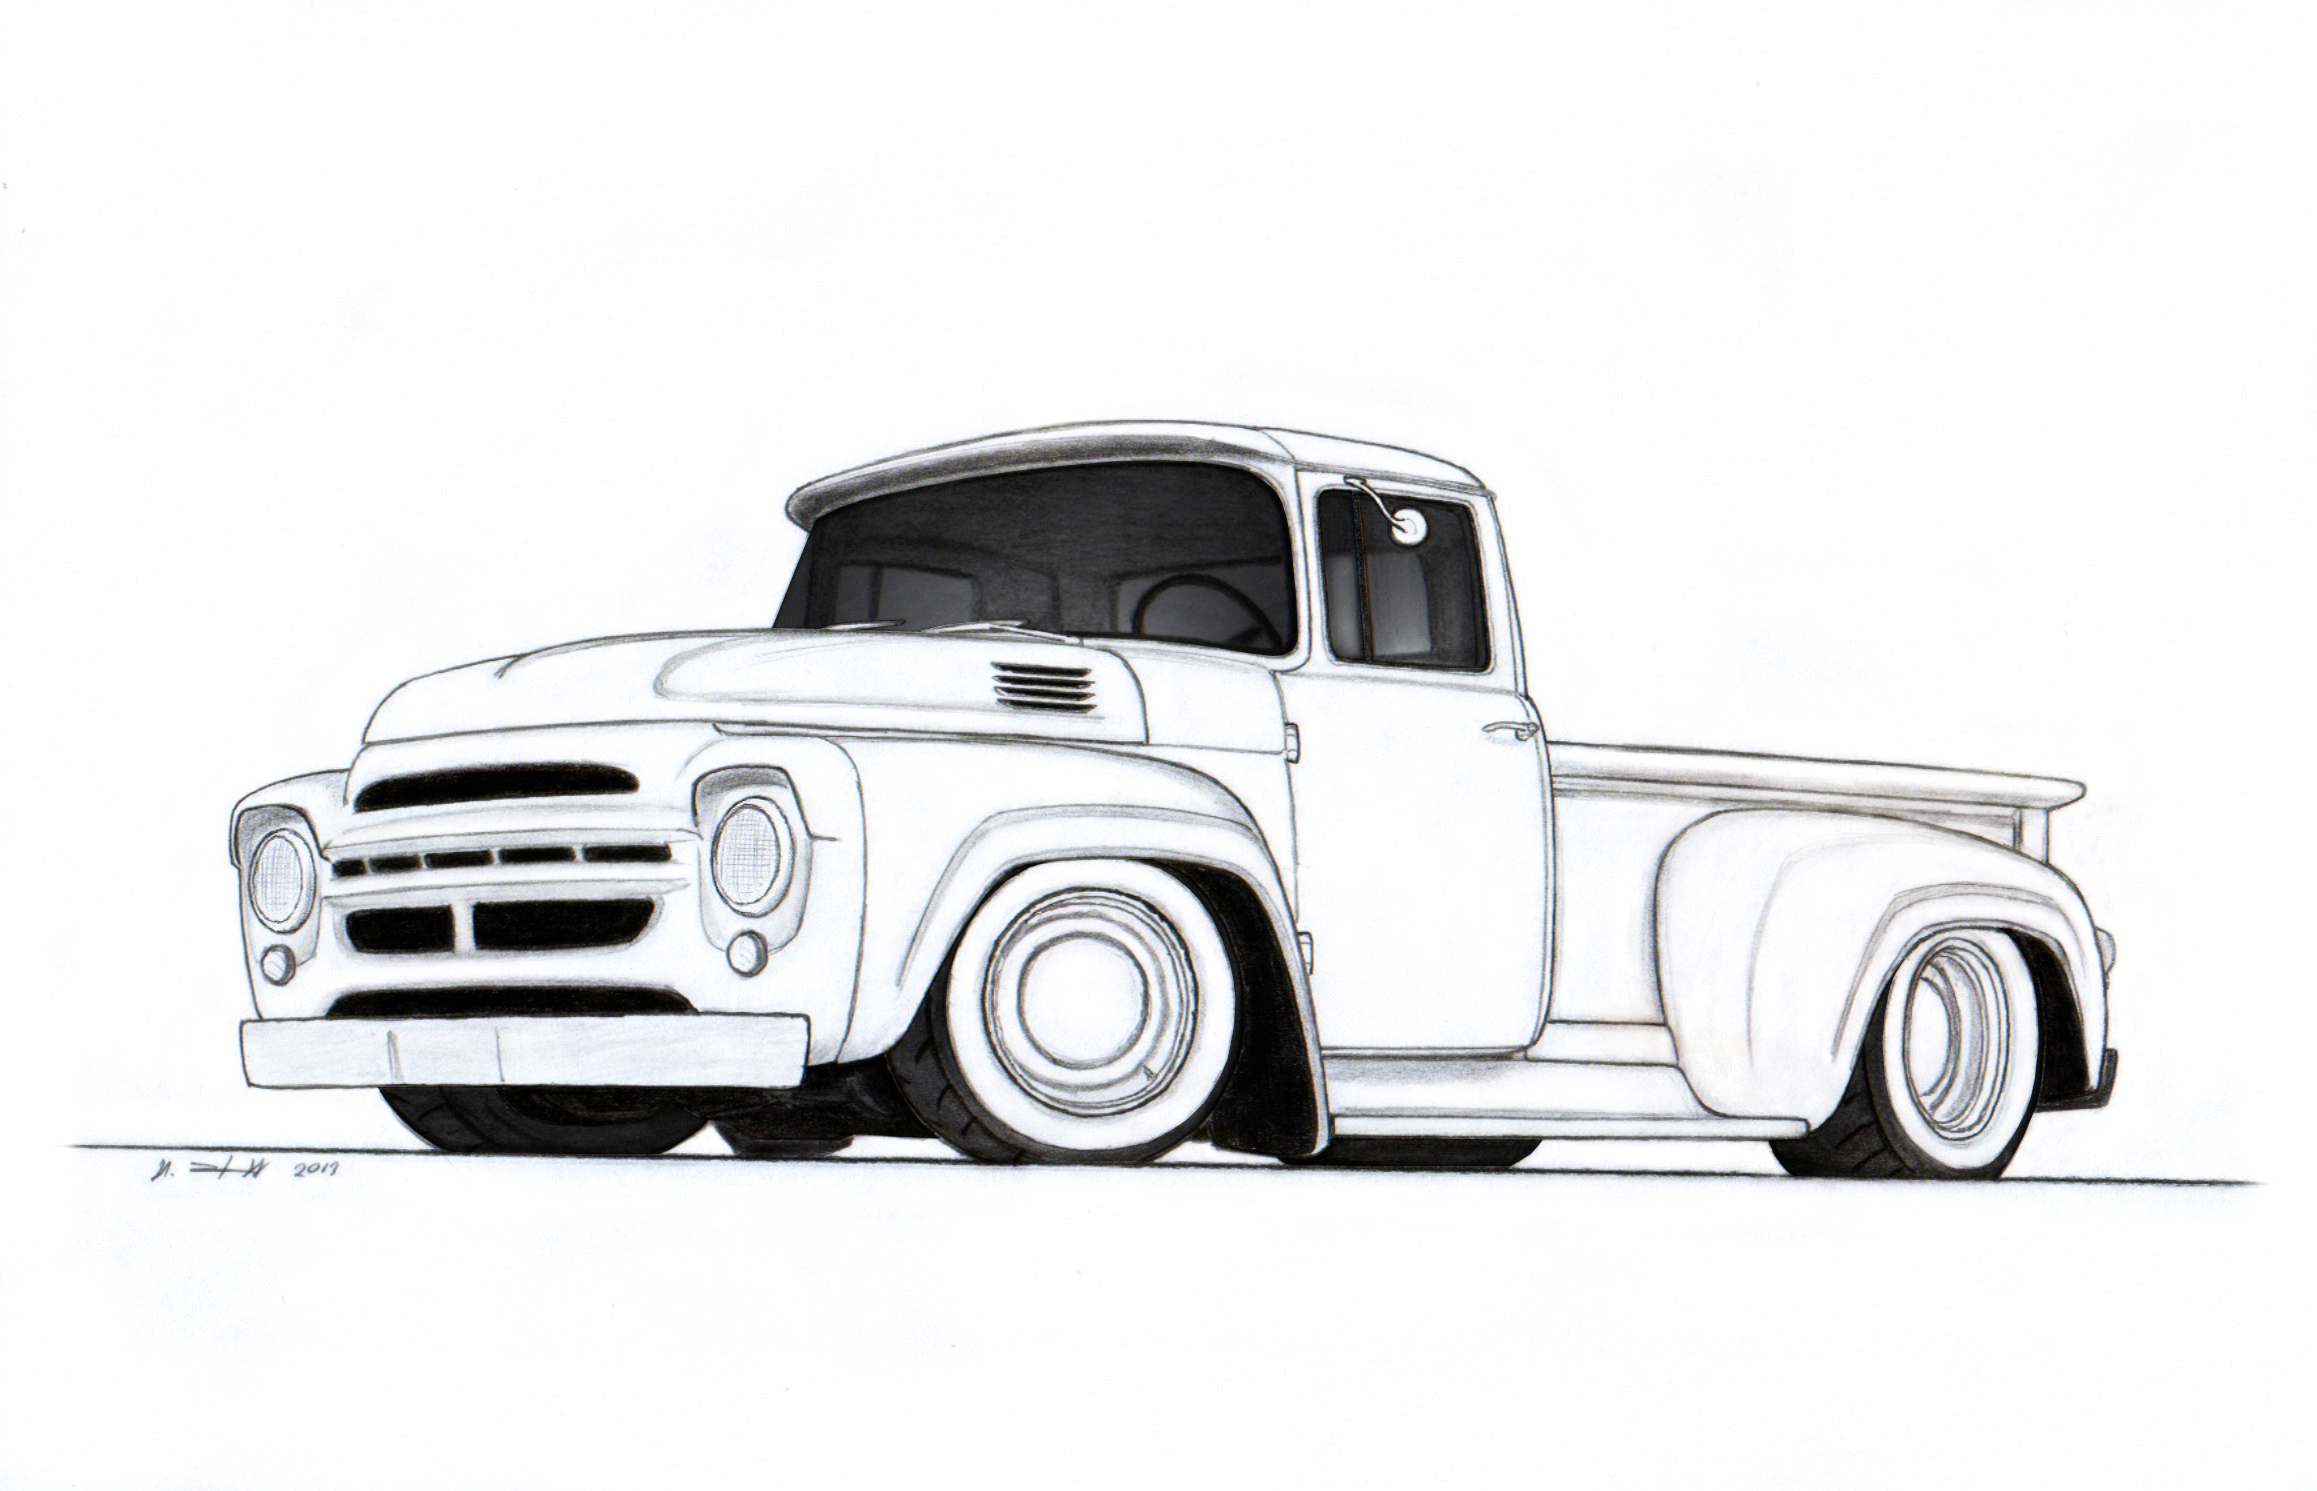 1966 Gmc Truck New Car Updates 2019 2020 Chevy Cheyenne Super 4x4 1964 Zil 130 Stepside Custom Pickup Drawing By Vertualissimo